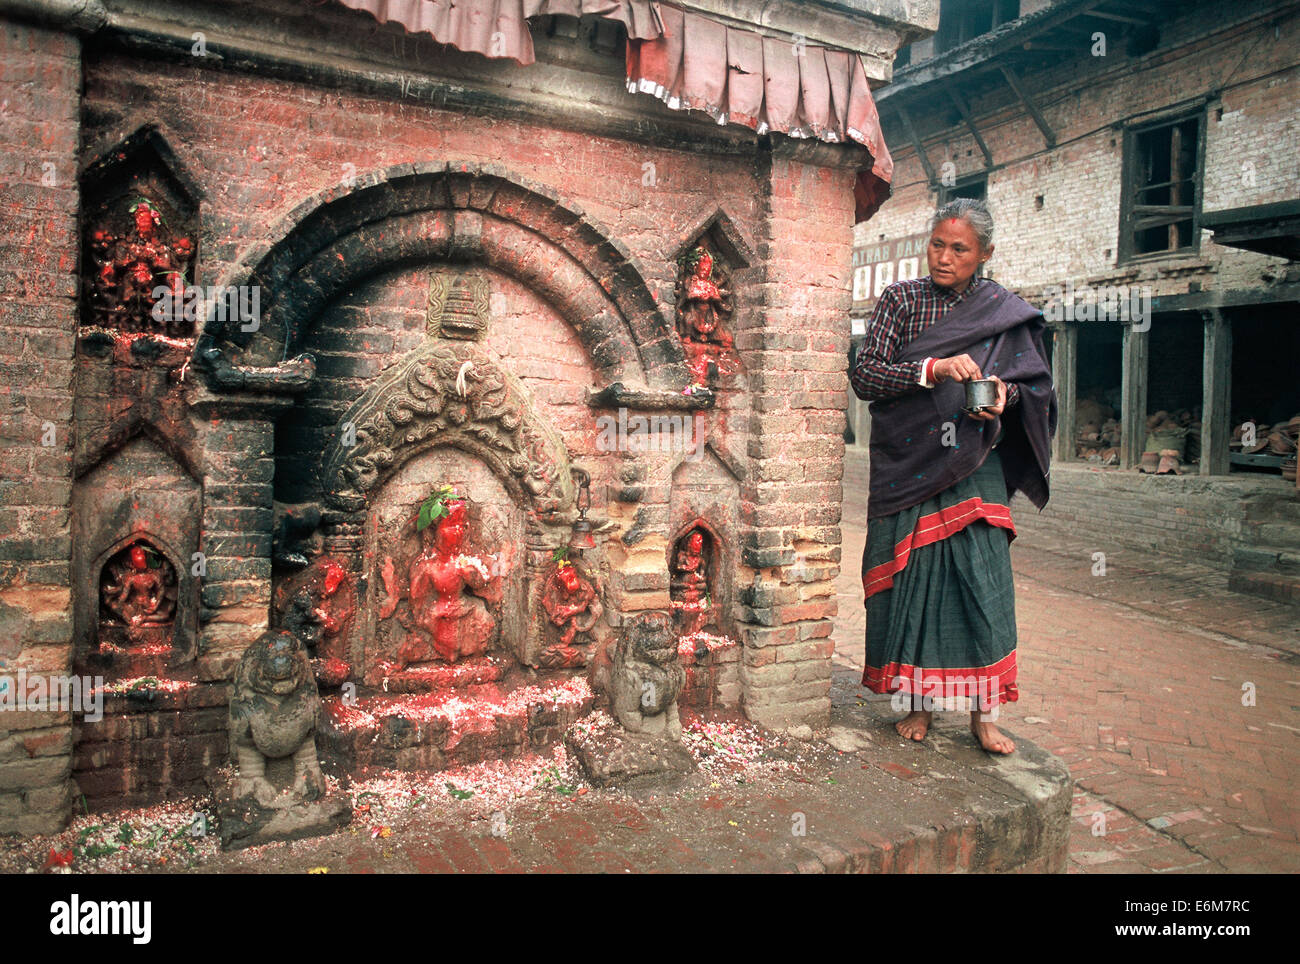 Newar woman worshipping a hindu deity ( Nepal) - Stock Image